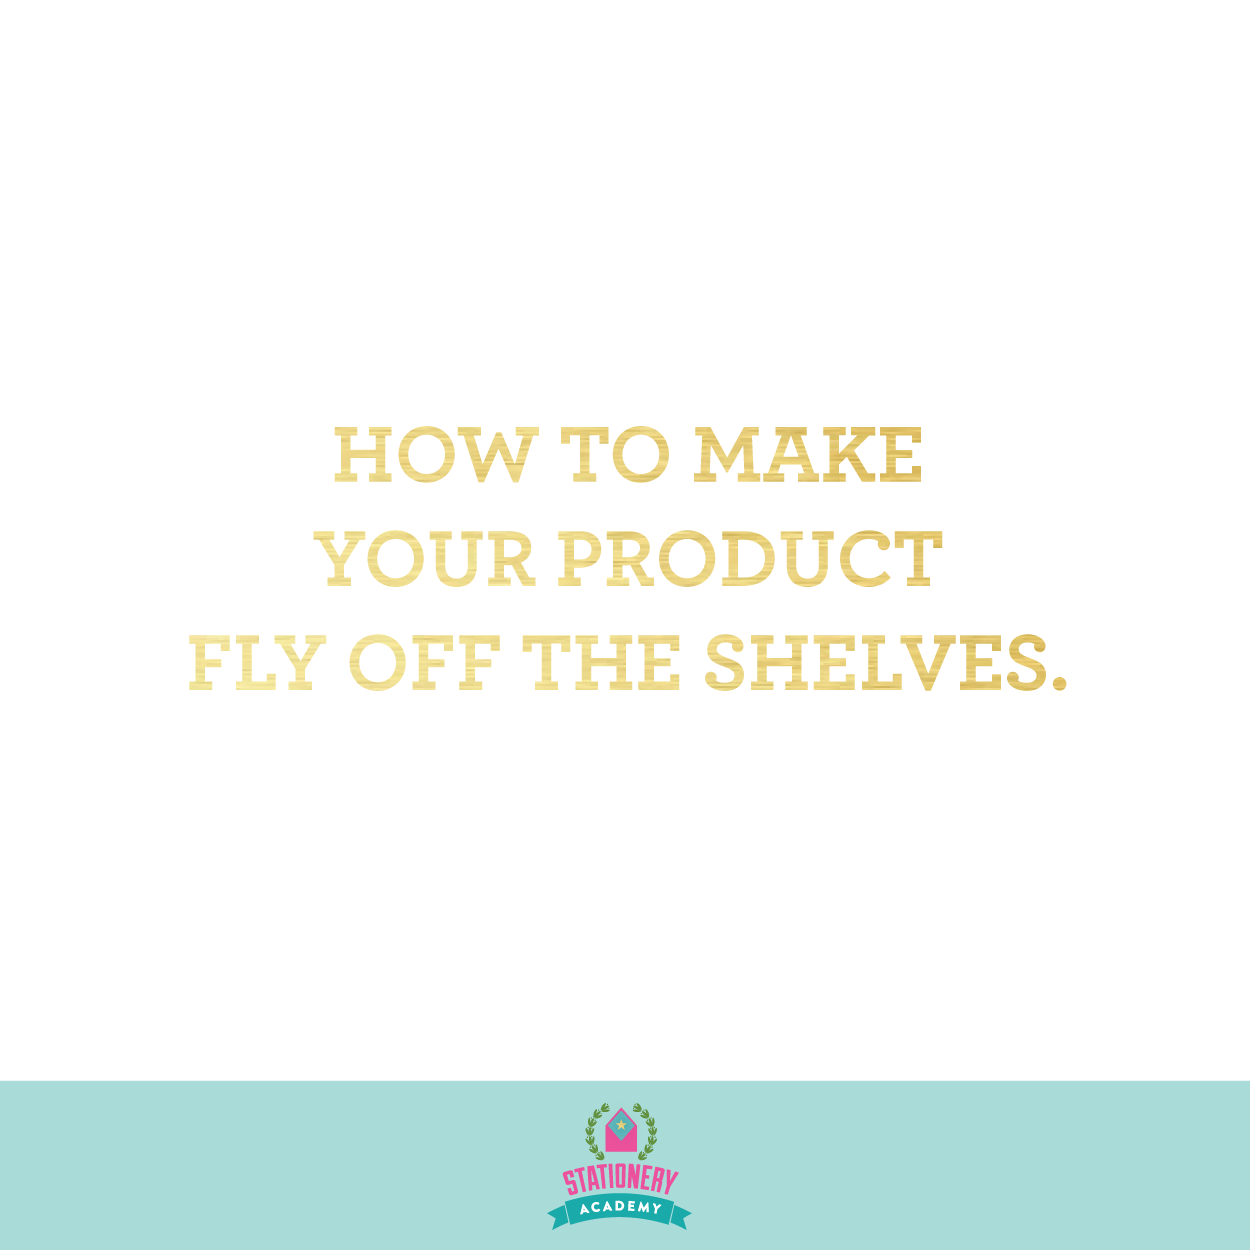 how-to-make-your-product-fly-off-the-shelves-etsy-stationery-academy-makers-creative-gifts-03